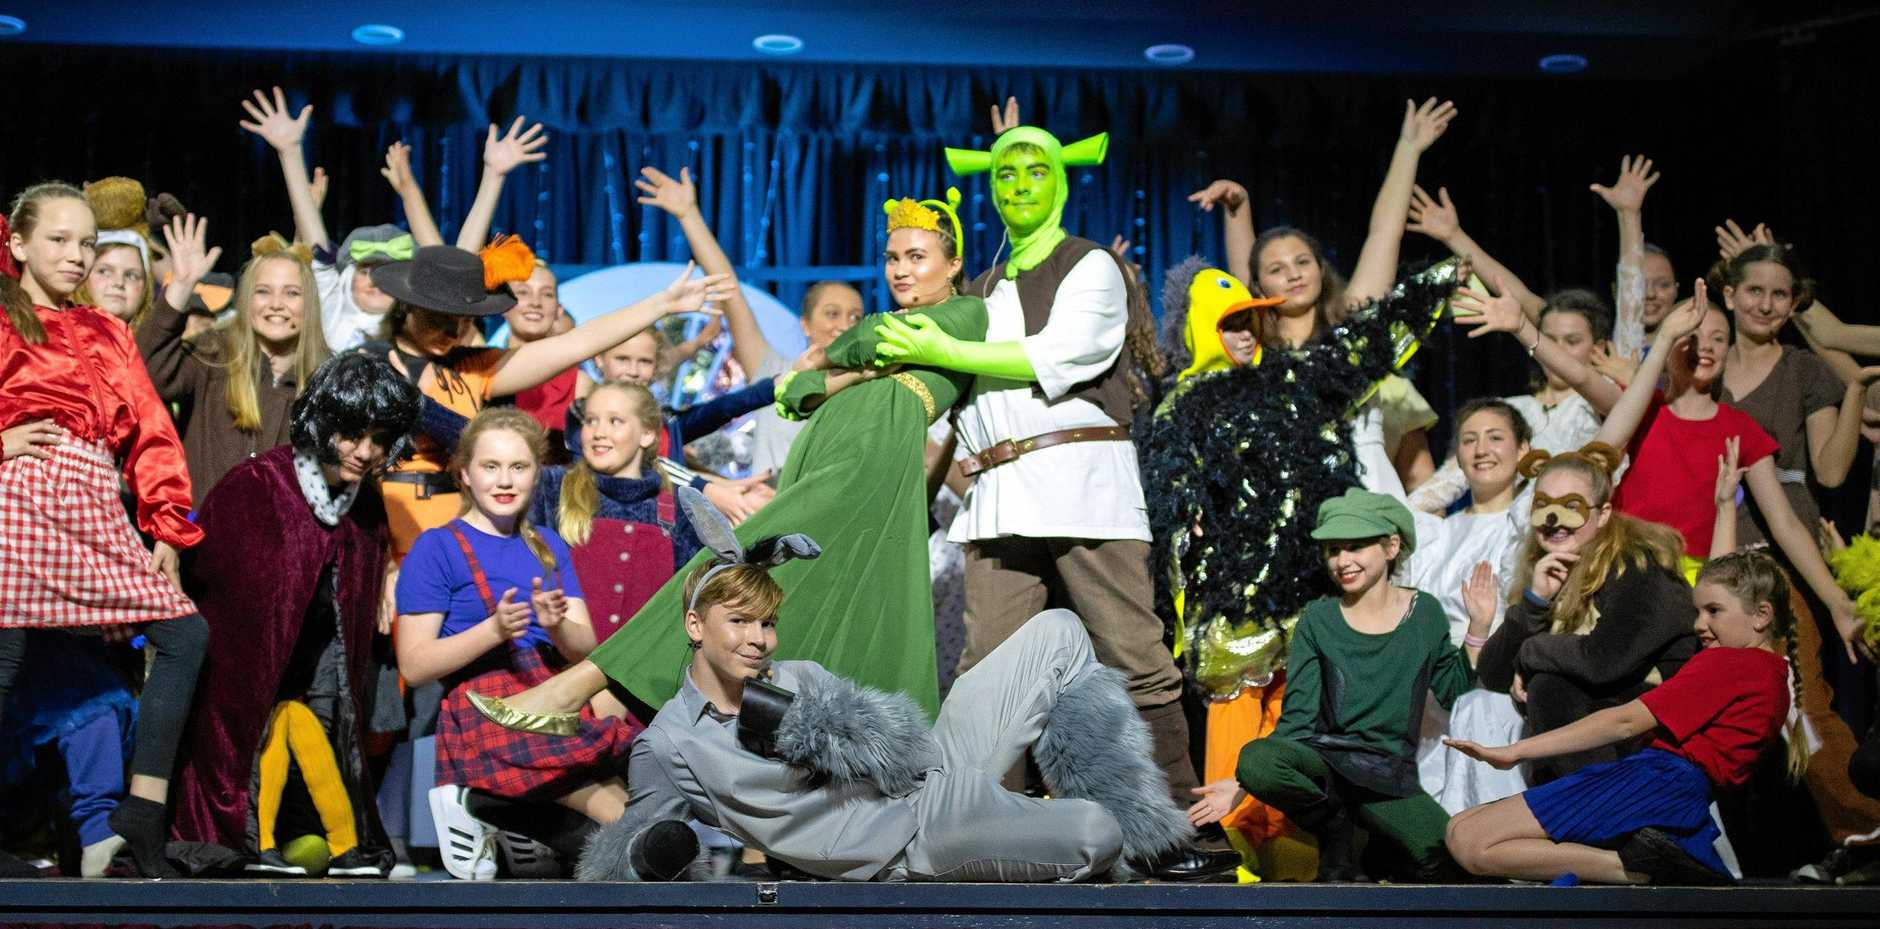 Saint Mary's All Star Shrek the Musical cast.